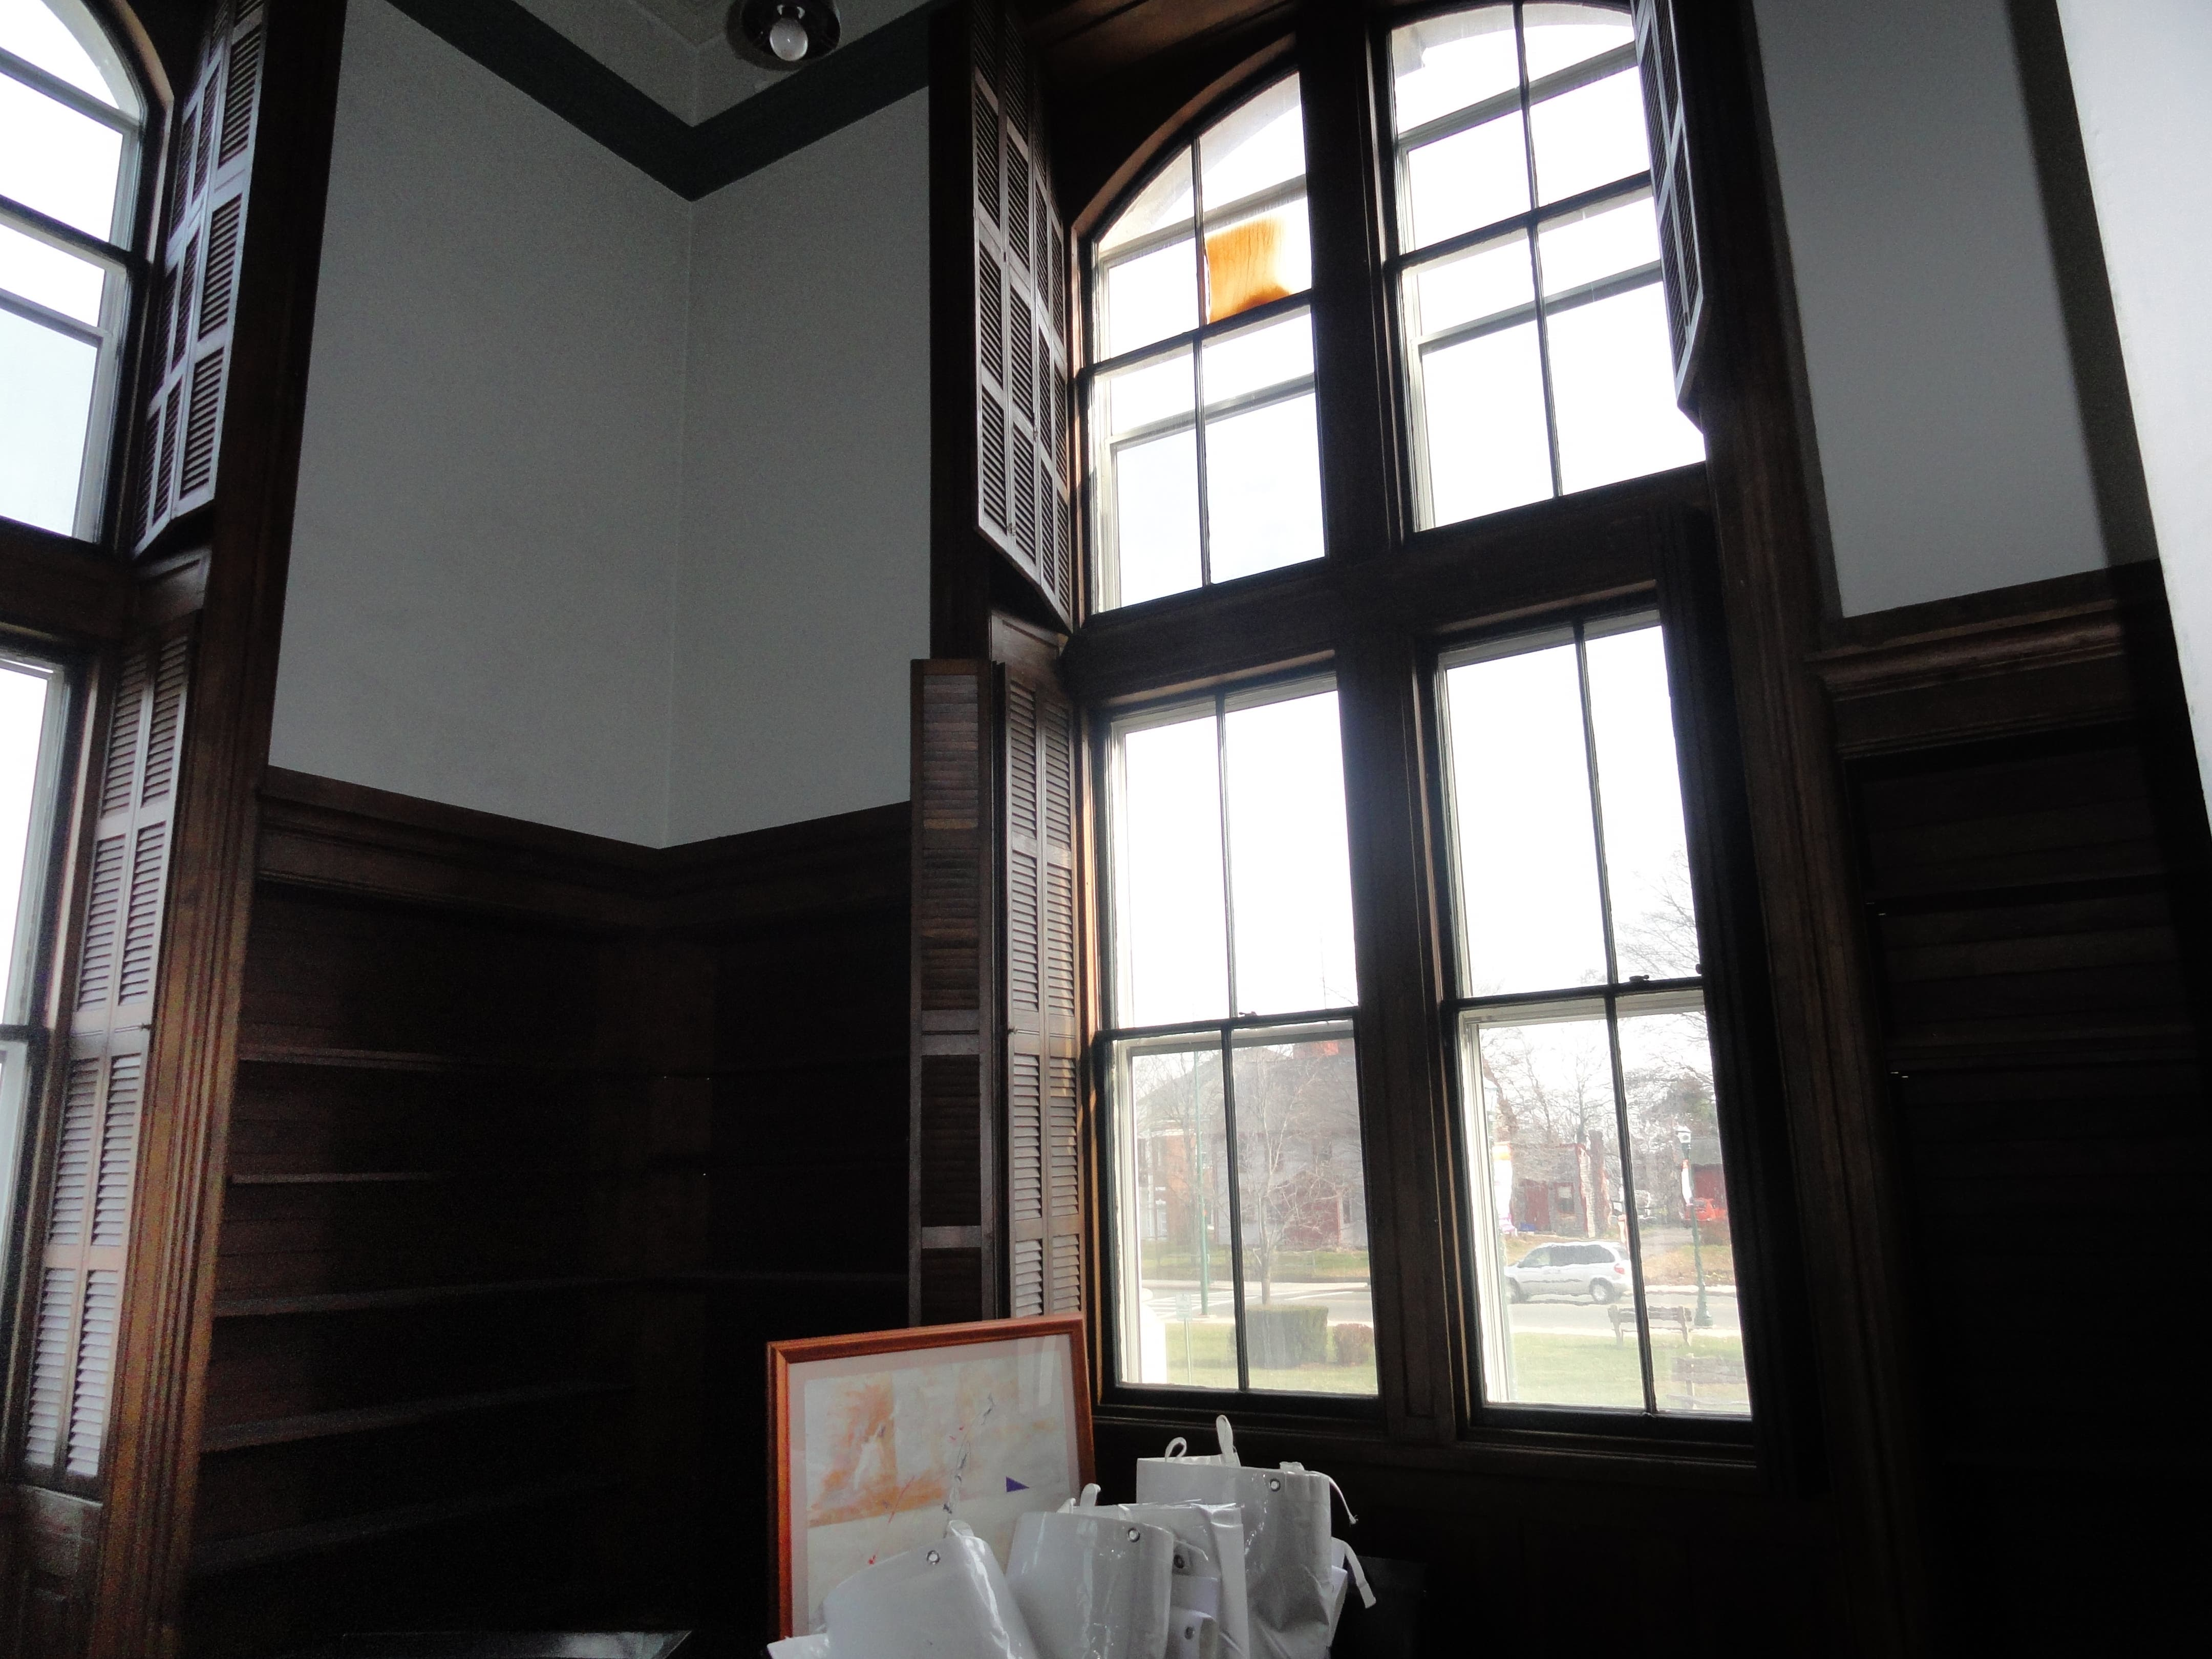 Another Step for Renovation of Braintree's Old Library | Braintree